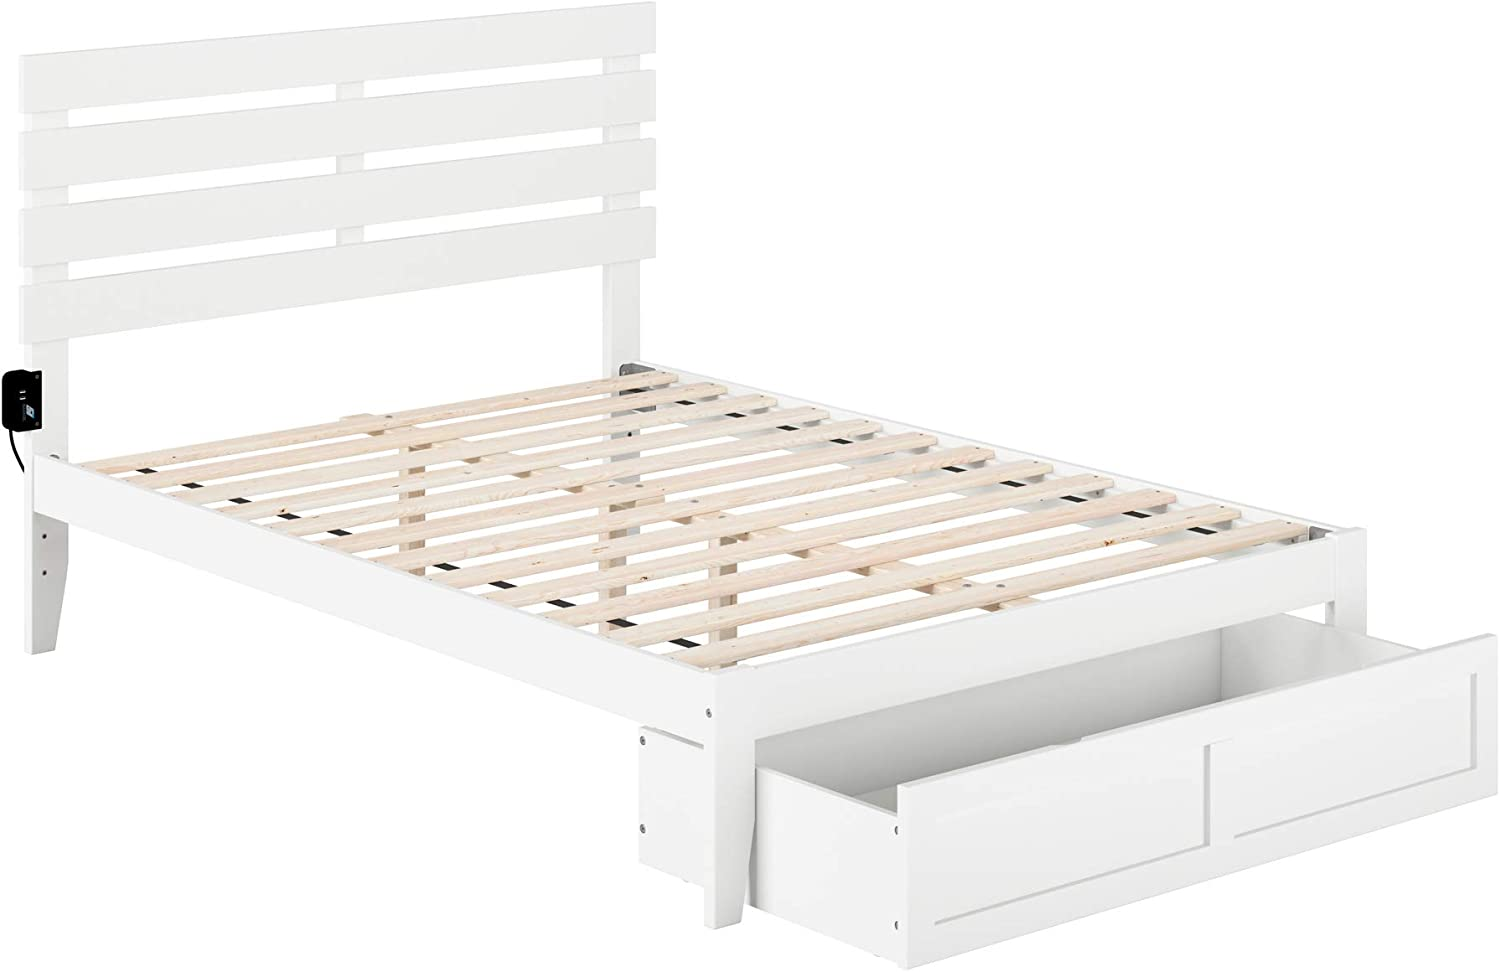 Atlantic Furniture Oxford Bed with Foot Drawer and USB Turbo Charger, Full, White